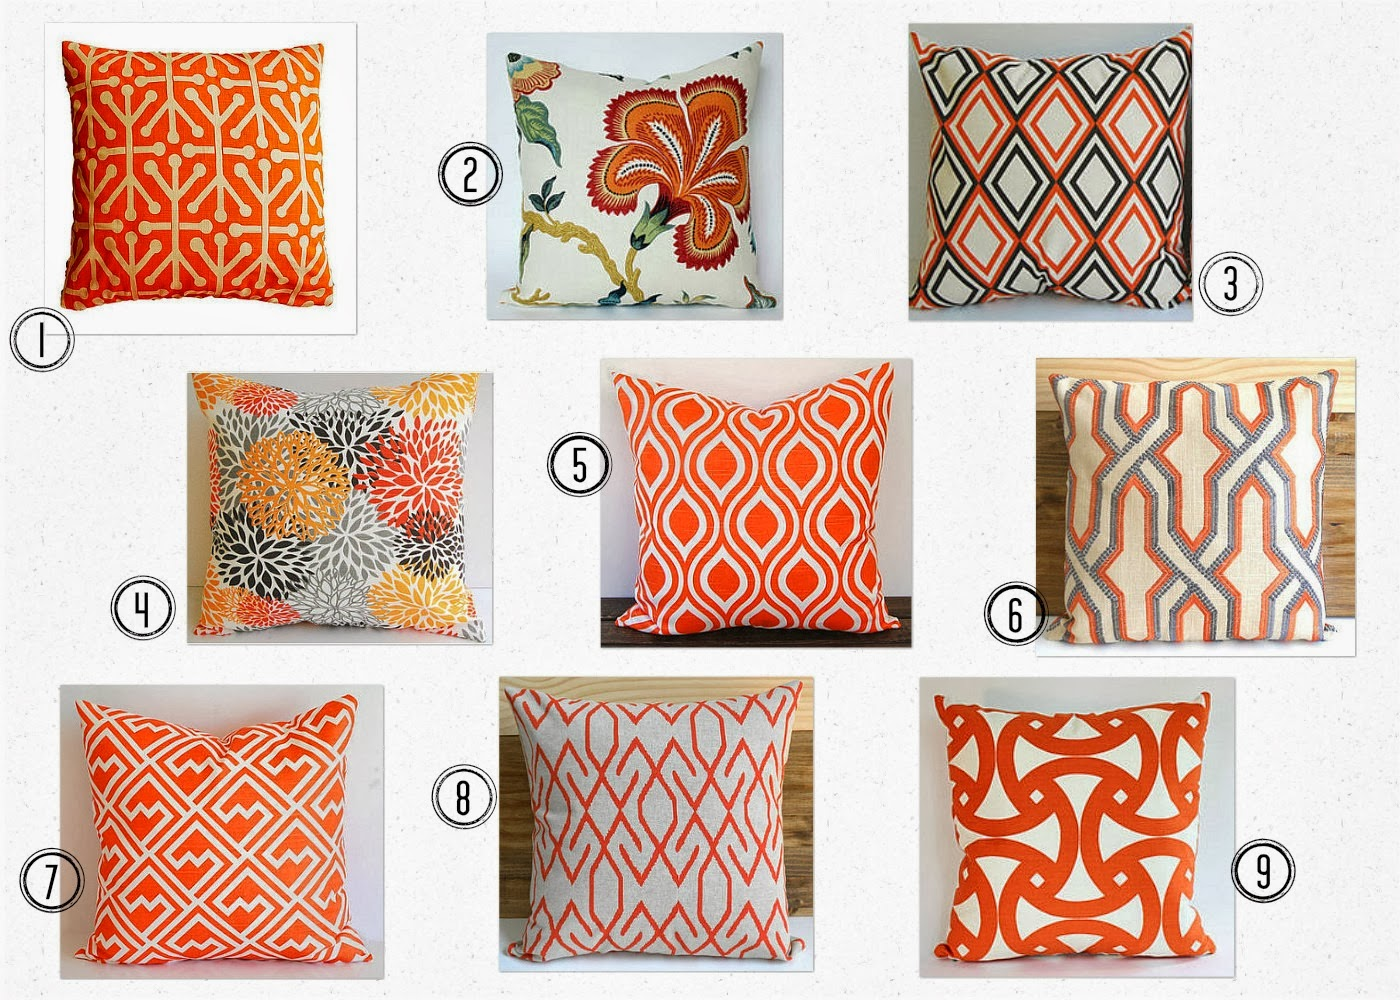 orange decorative pillows  decorating ideas - orange decorative pillows contemporary stripes in orange and brown throwpillow throw pillows are a great